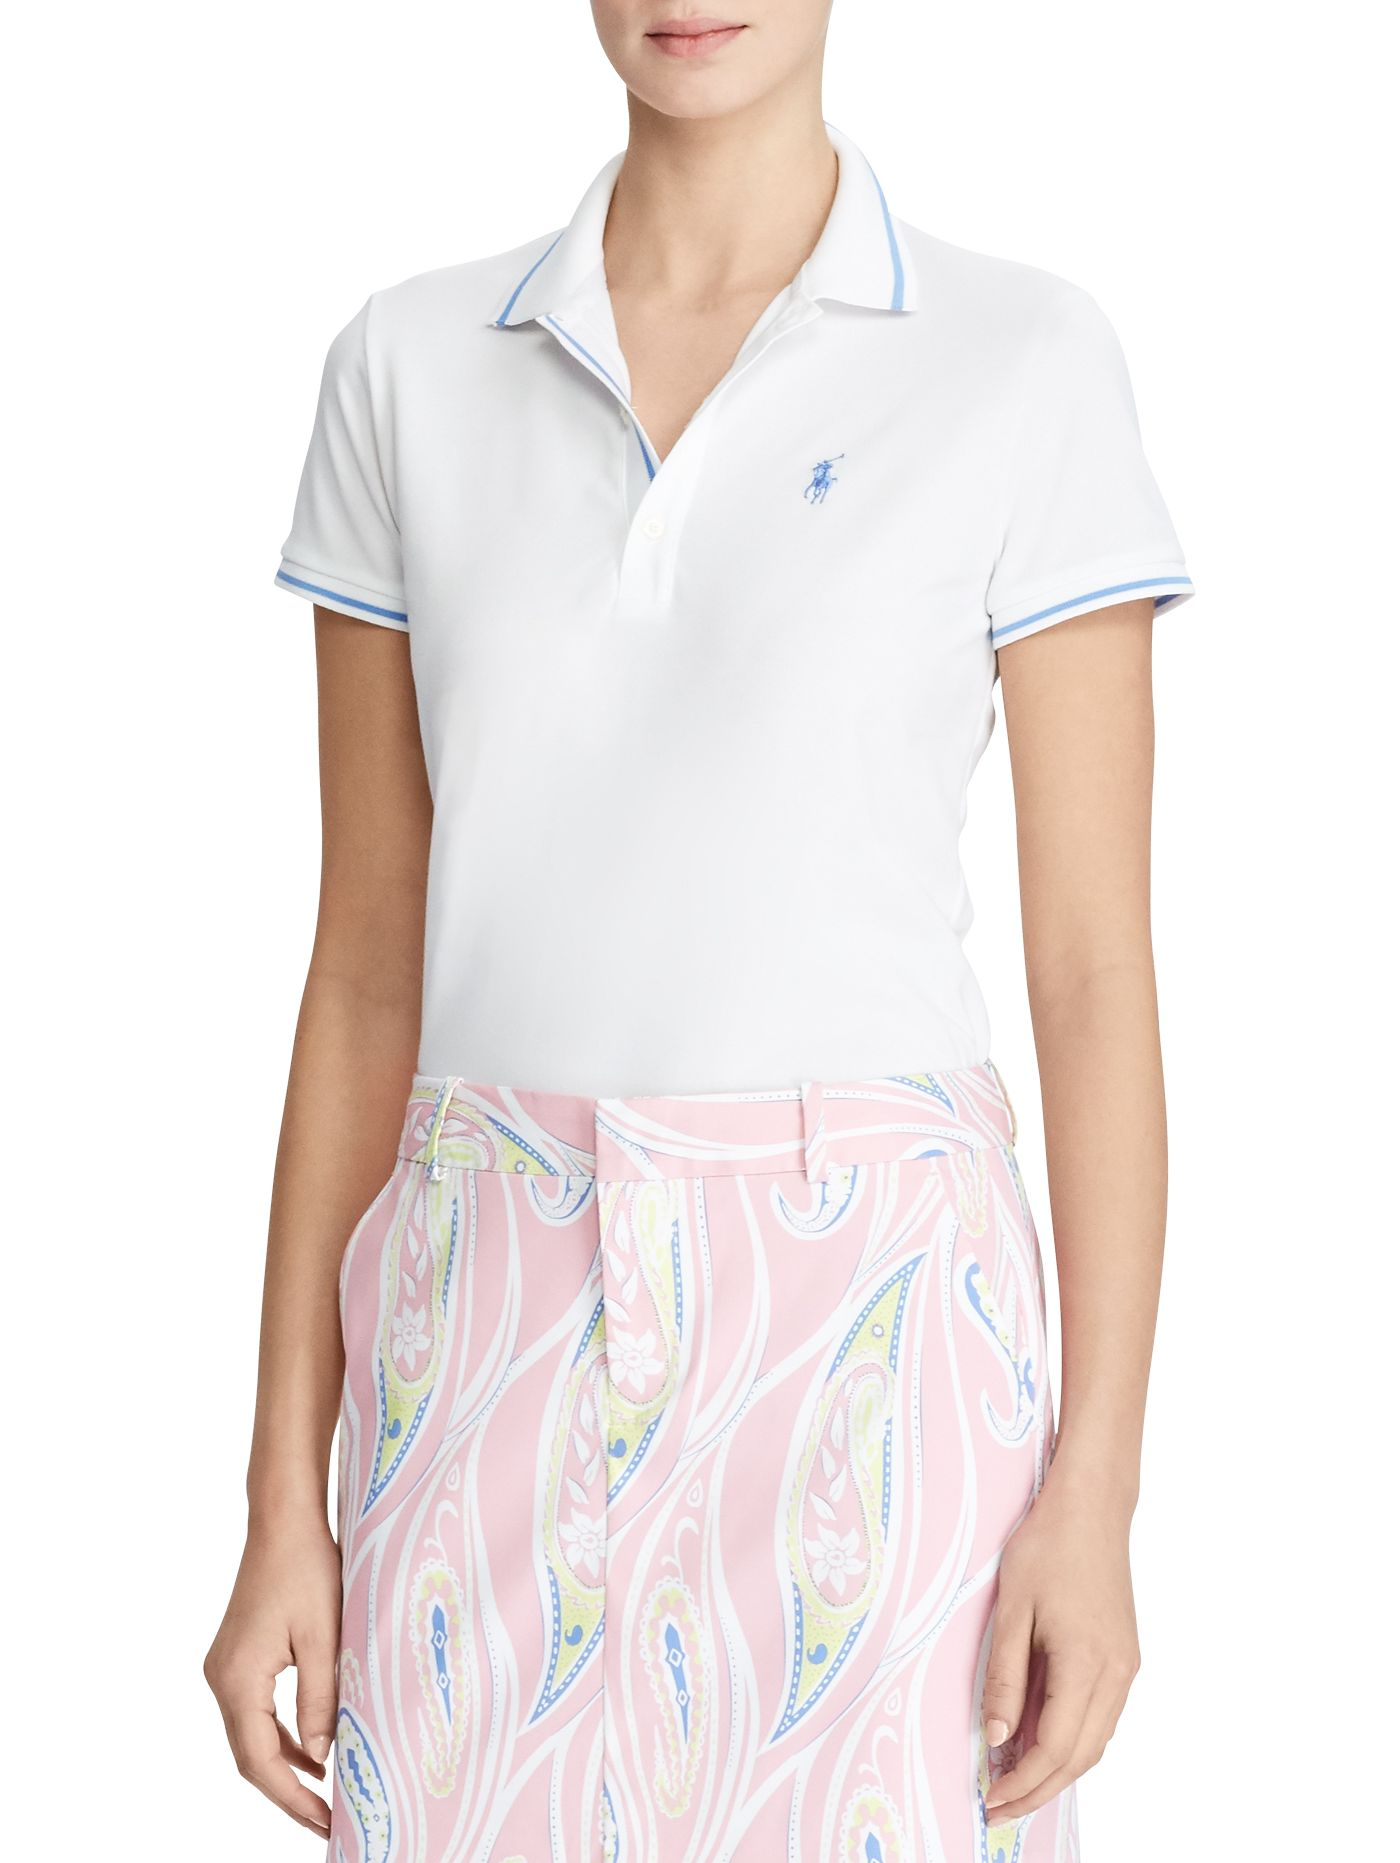 Ralph Lauren Golf Women's Short Sleeve Tailored Performance Golf Polo